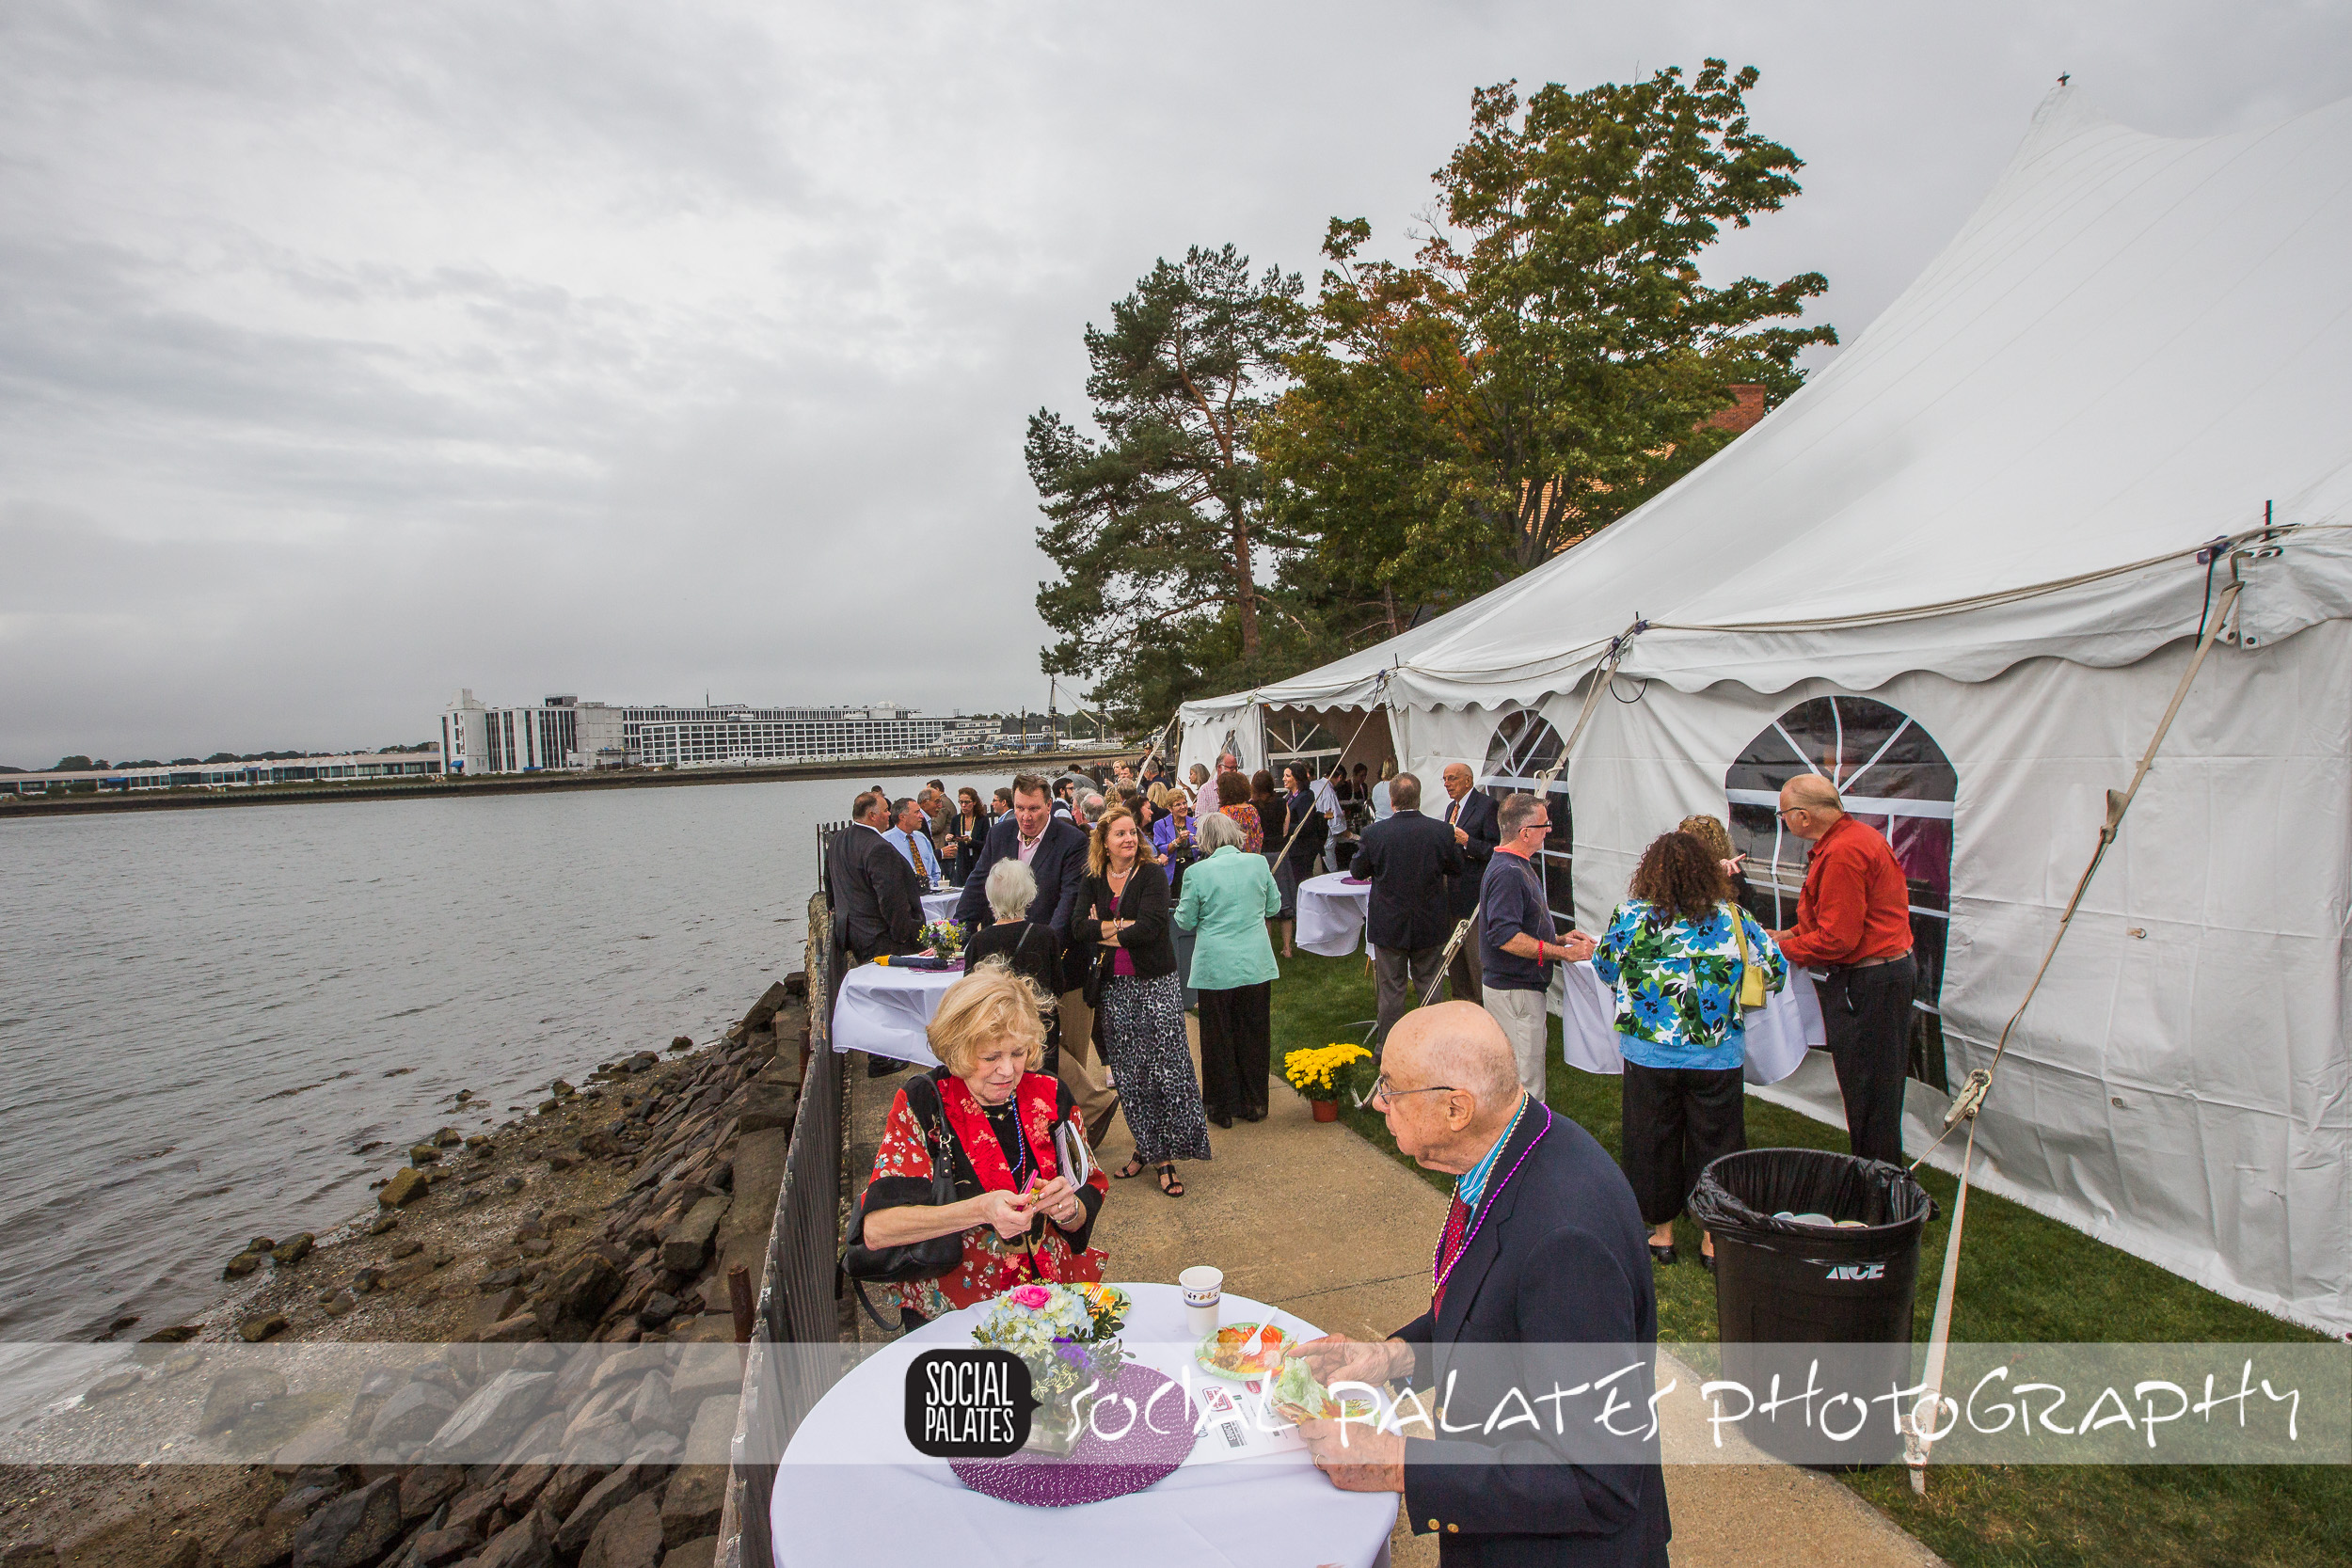 Taste_of_the_gables_2014-4793.jpg